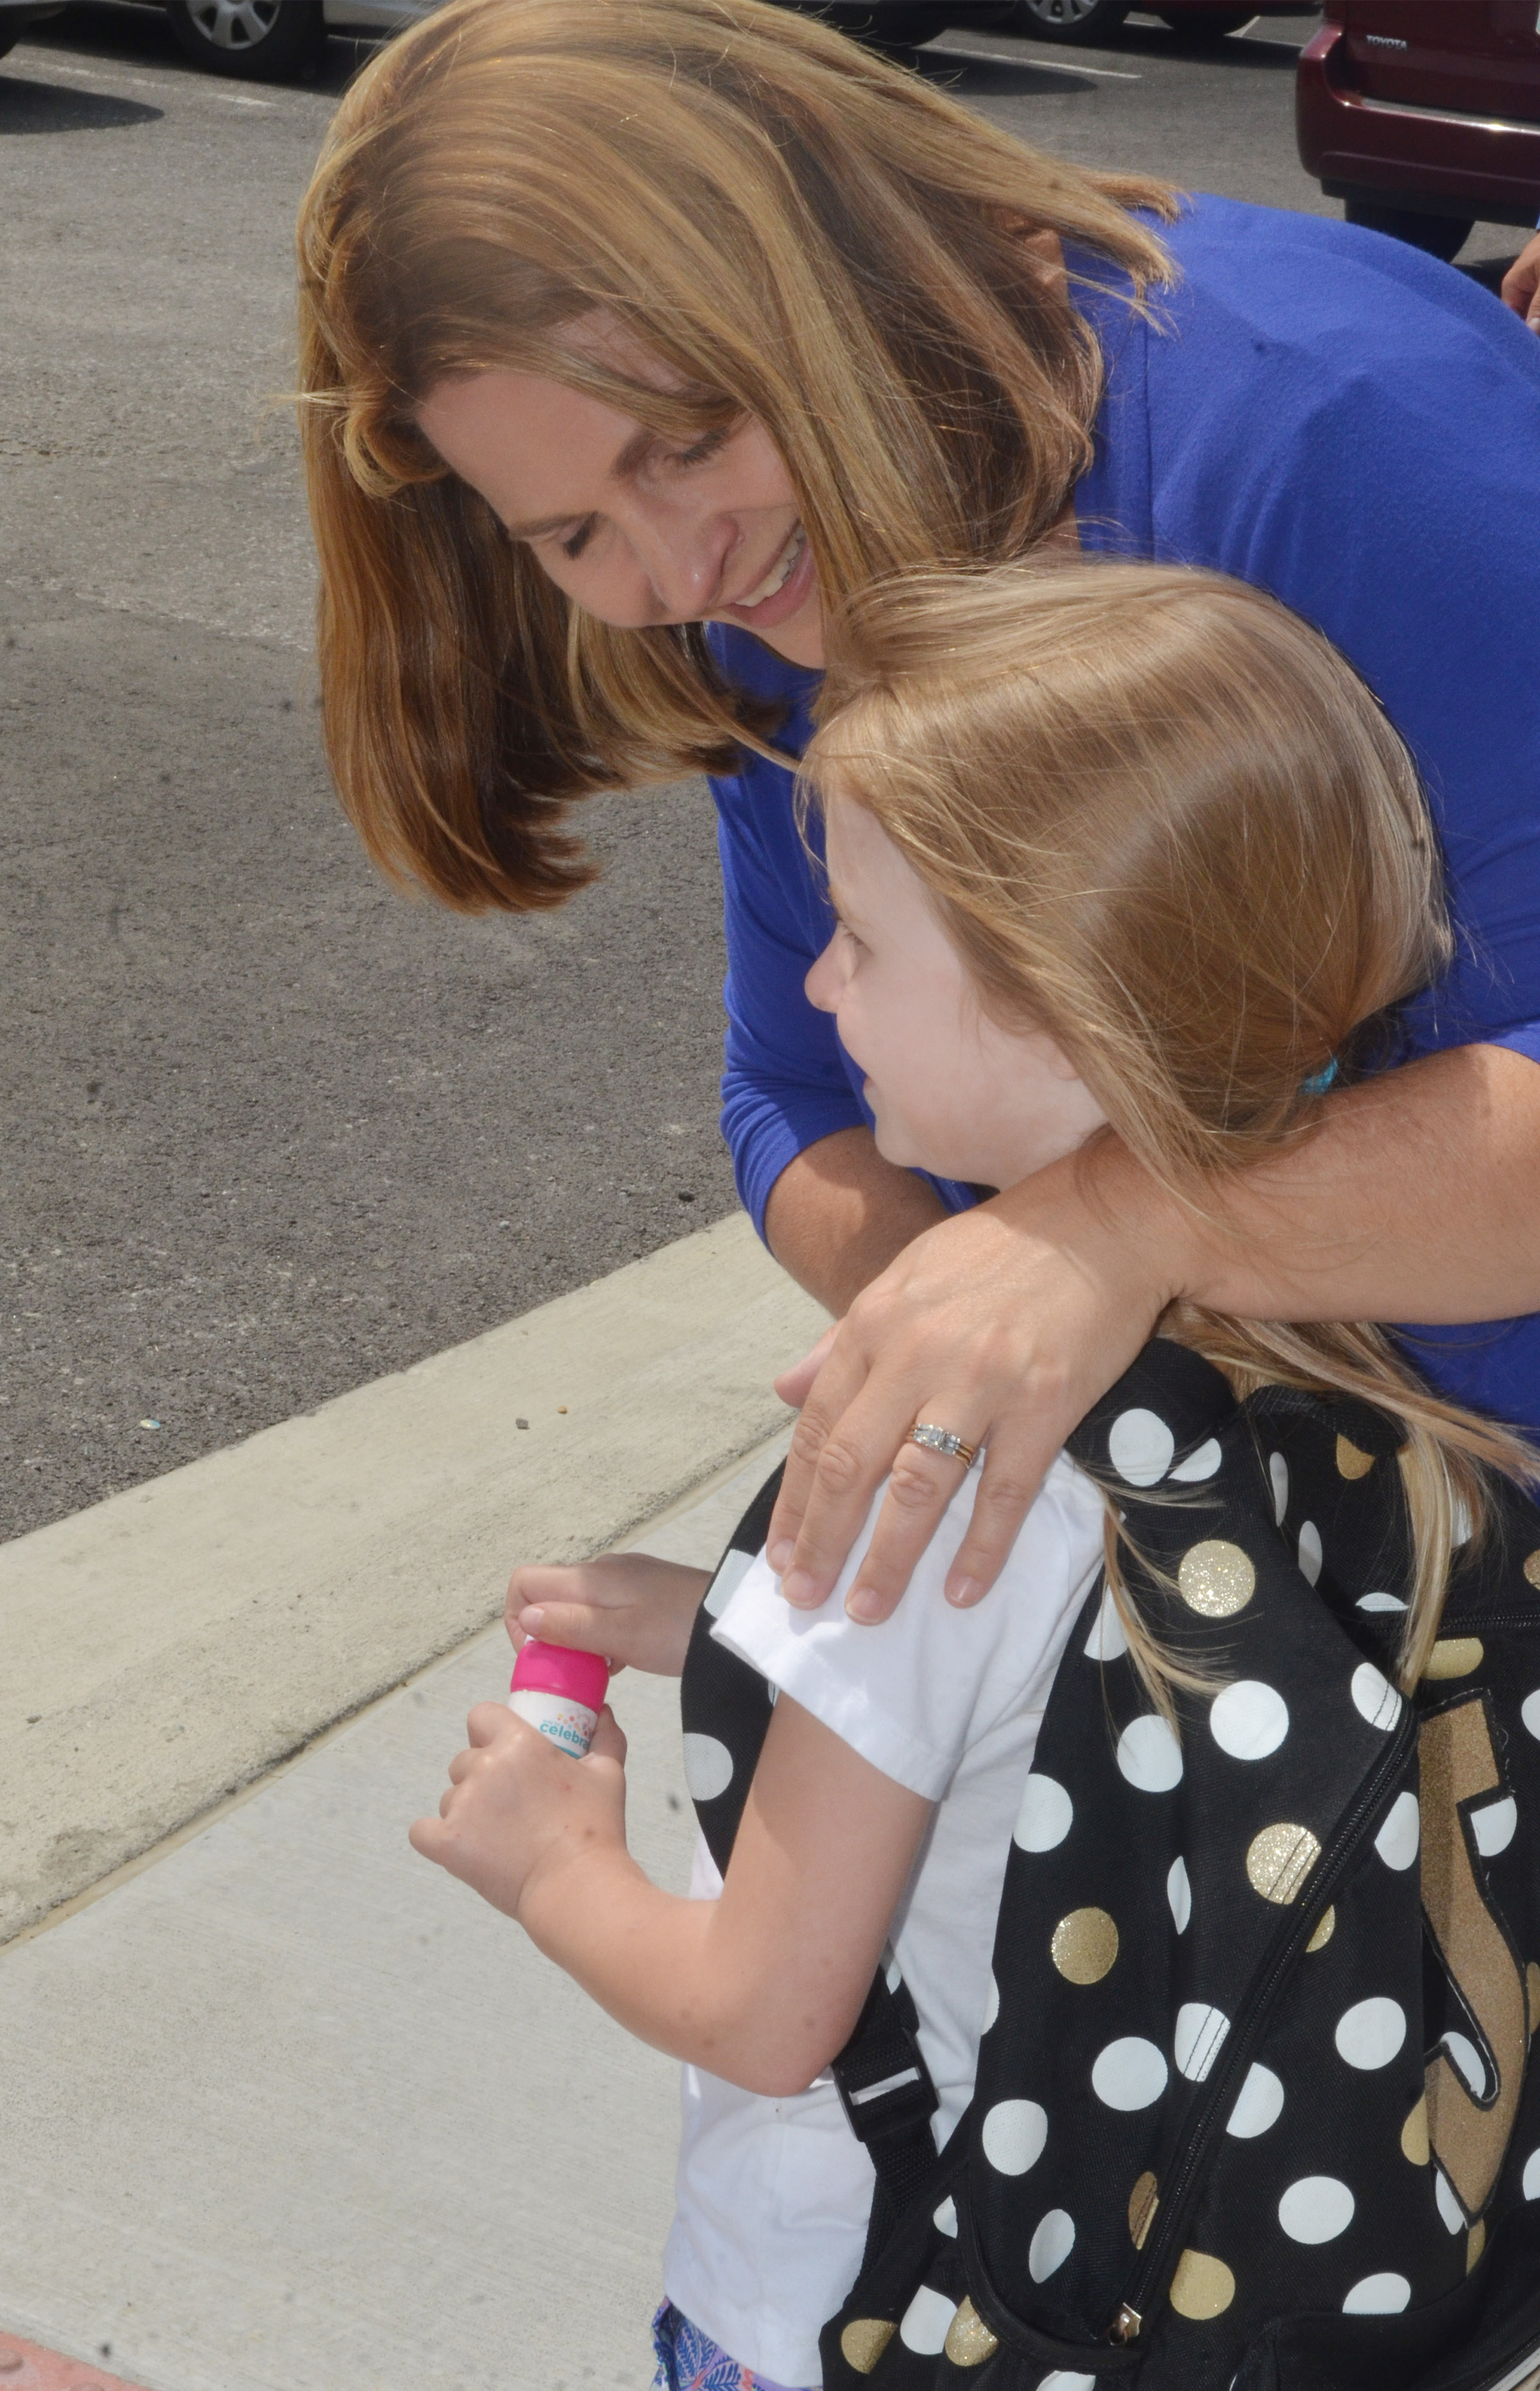 CES Guidance Counselor Sonya Orberson talks to kindergartener Jewell Brewster as she waits for her ride home.